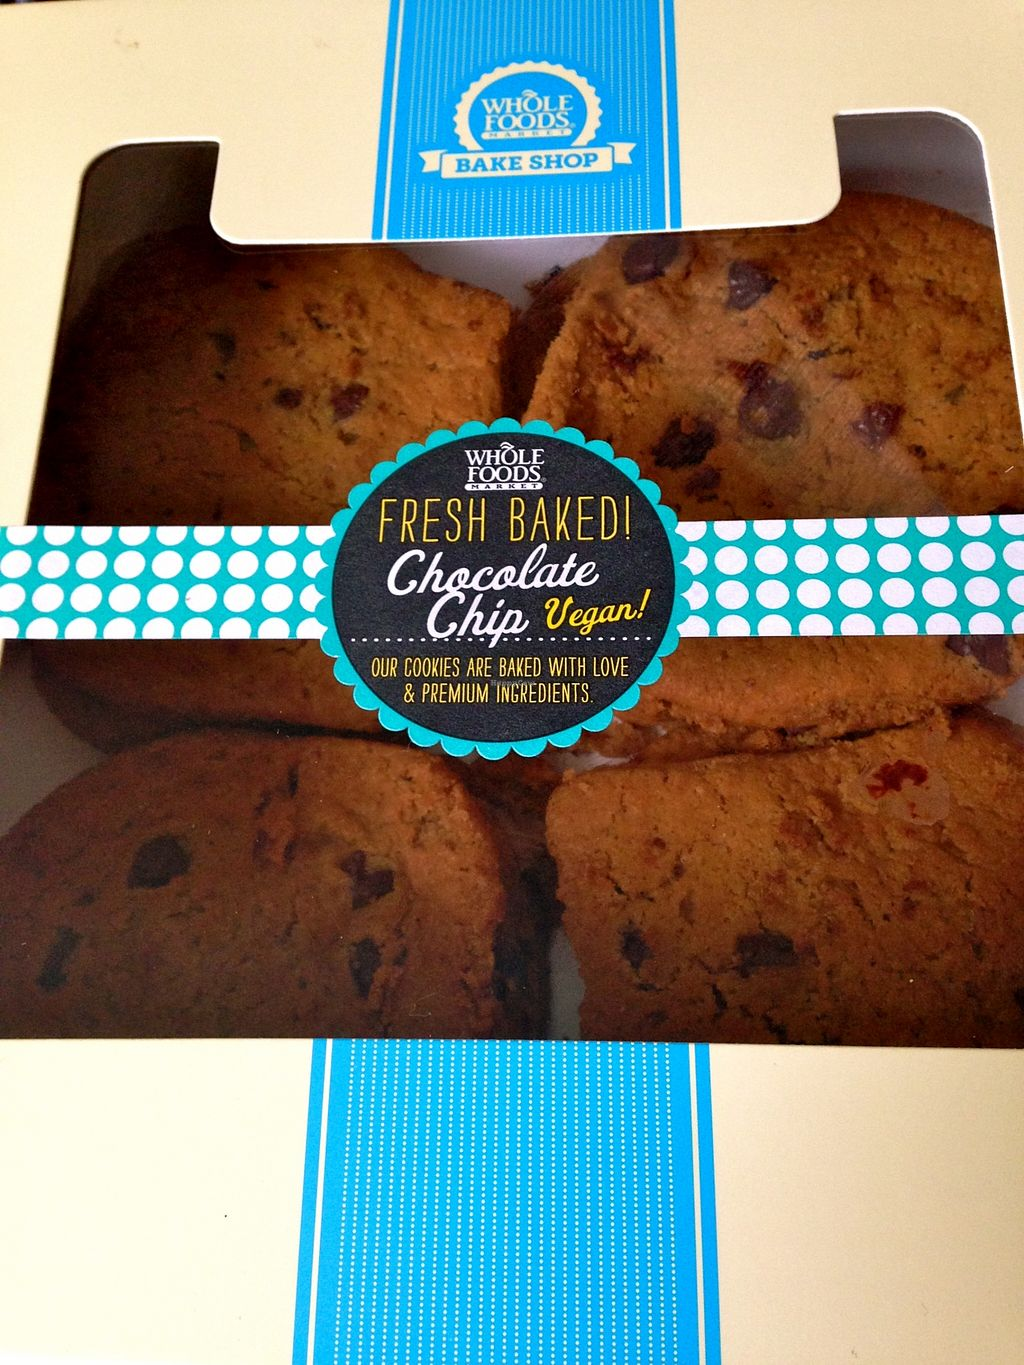 """Photo of Whole Foods Market  by <a href=""""/members/profile/myra975"""">myra975</a> <br/>Large vegan chocolate chip cookies ($12) <br/> September 3, 2015  - <a href='/contact/abuse/image/41738/116354'>Report</a>"""